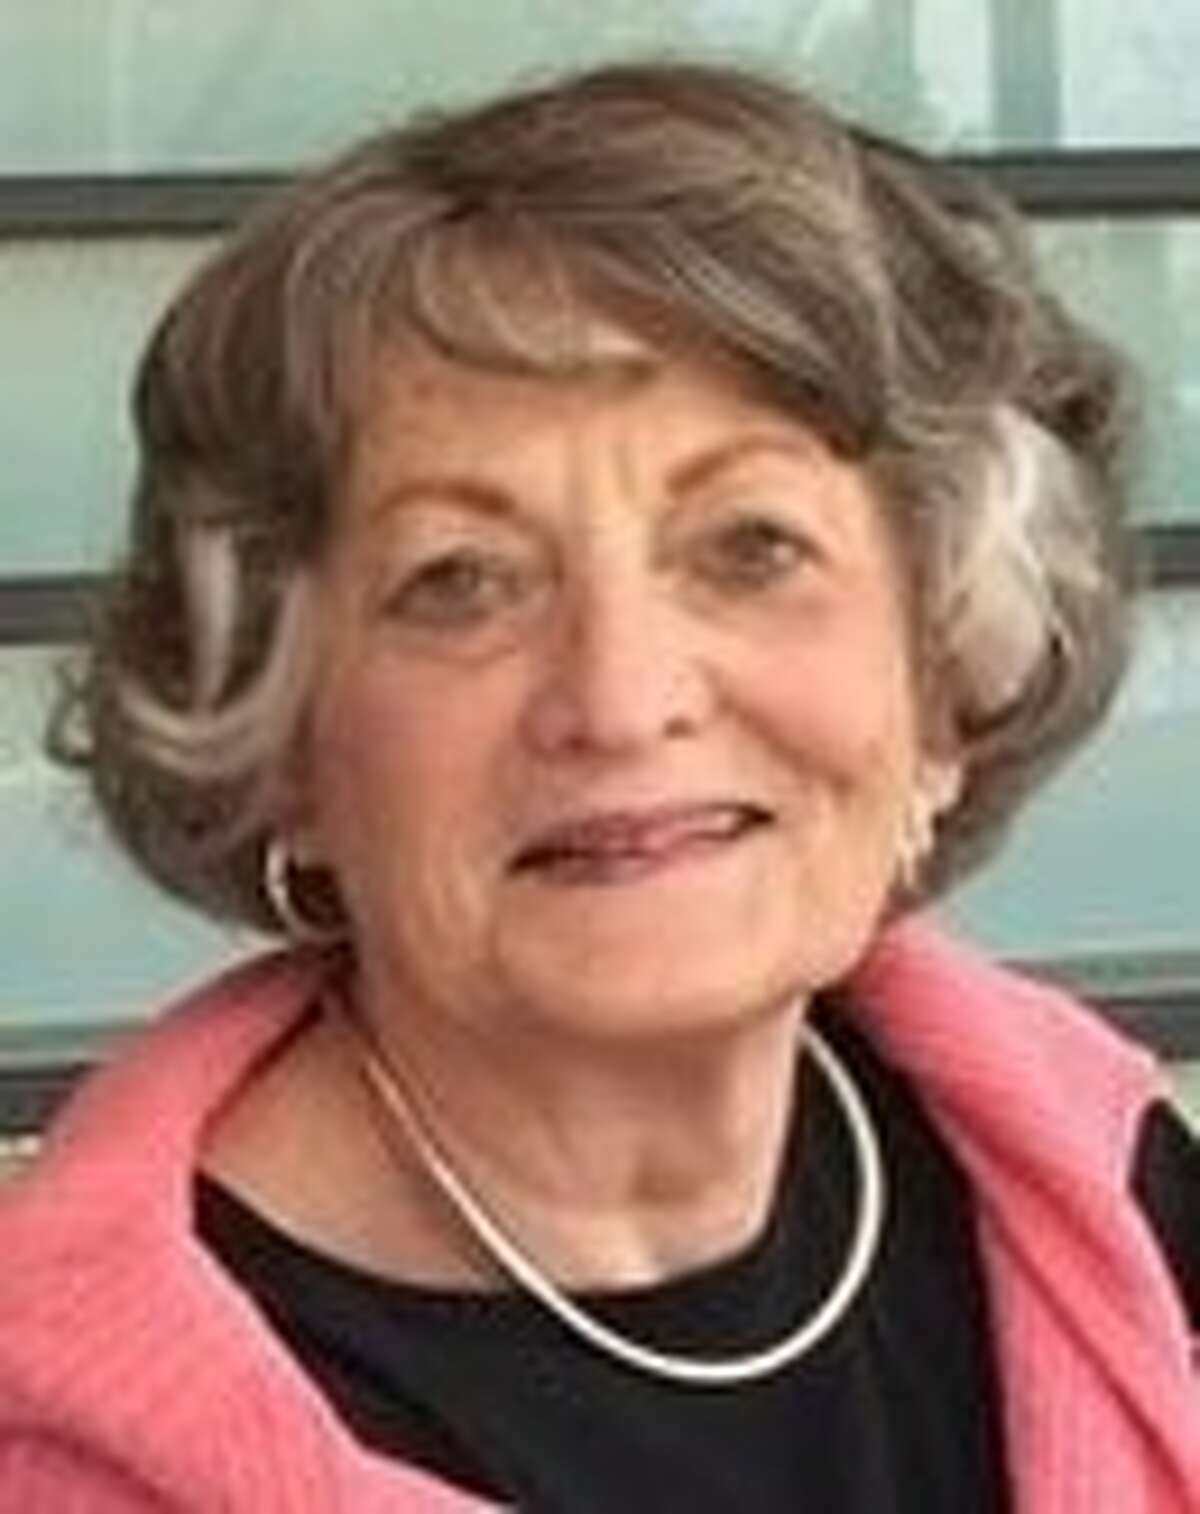 """Nancy Reed, 77, died on Sept. 15 of """"flood-necrotizing fasciitis"""" complicating blunt trauma of an upper extremity via an accident, according to the Harris County Institute of Forensic Sciences. She is the county's 36th official Harvey-related death. The Kingwood woman fell in her flooded home and died from flesh-eating bacteria acquired through the injury. Her death was added on Sept. 25 to Harris County's official list of storm fatalities. >>Remembering those we lost during Hurricane Harvey."""